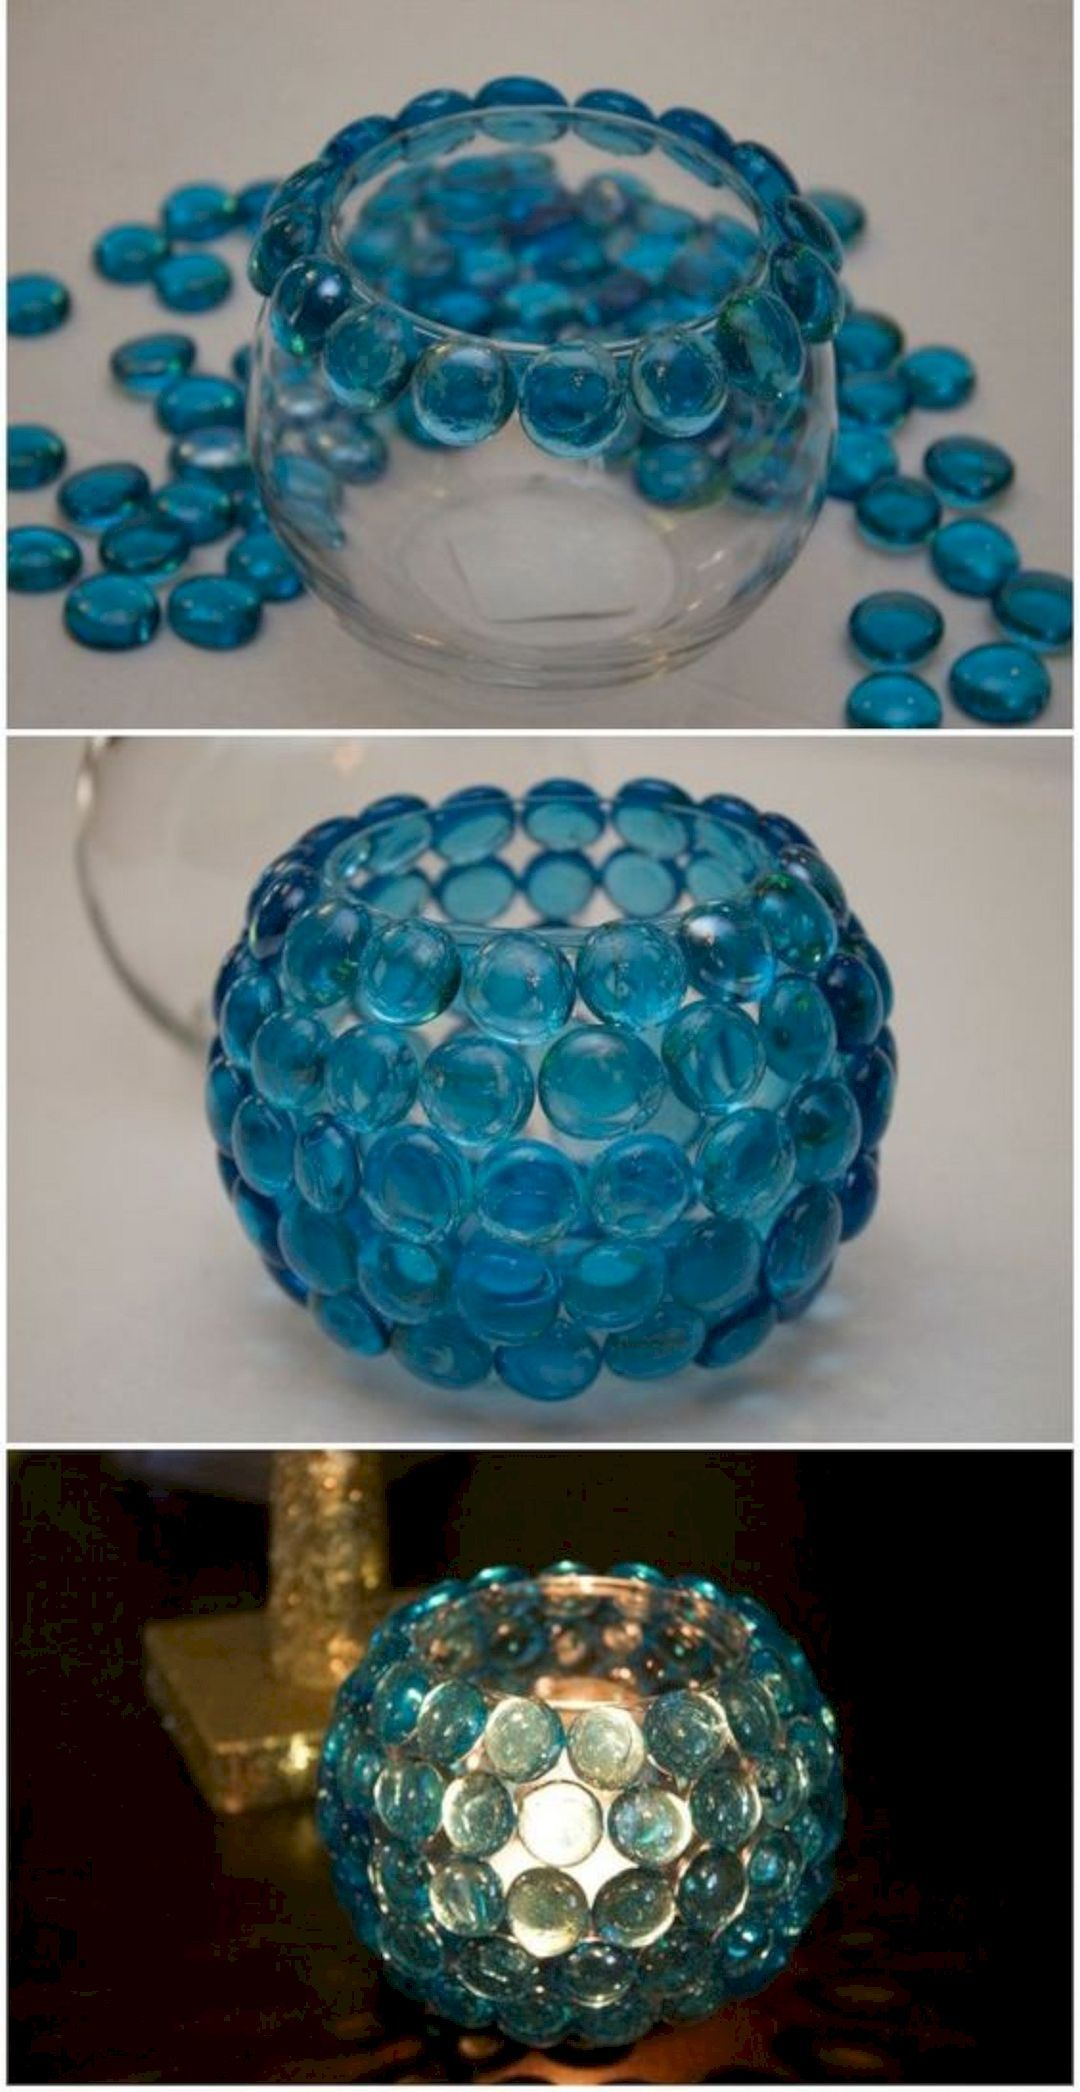 17 DIY Candle Holders to Decorate Your Home | Futurist Architecture